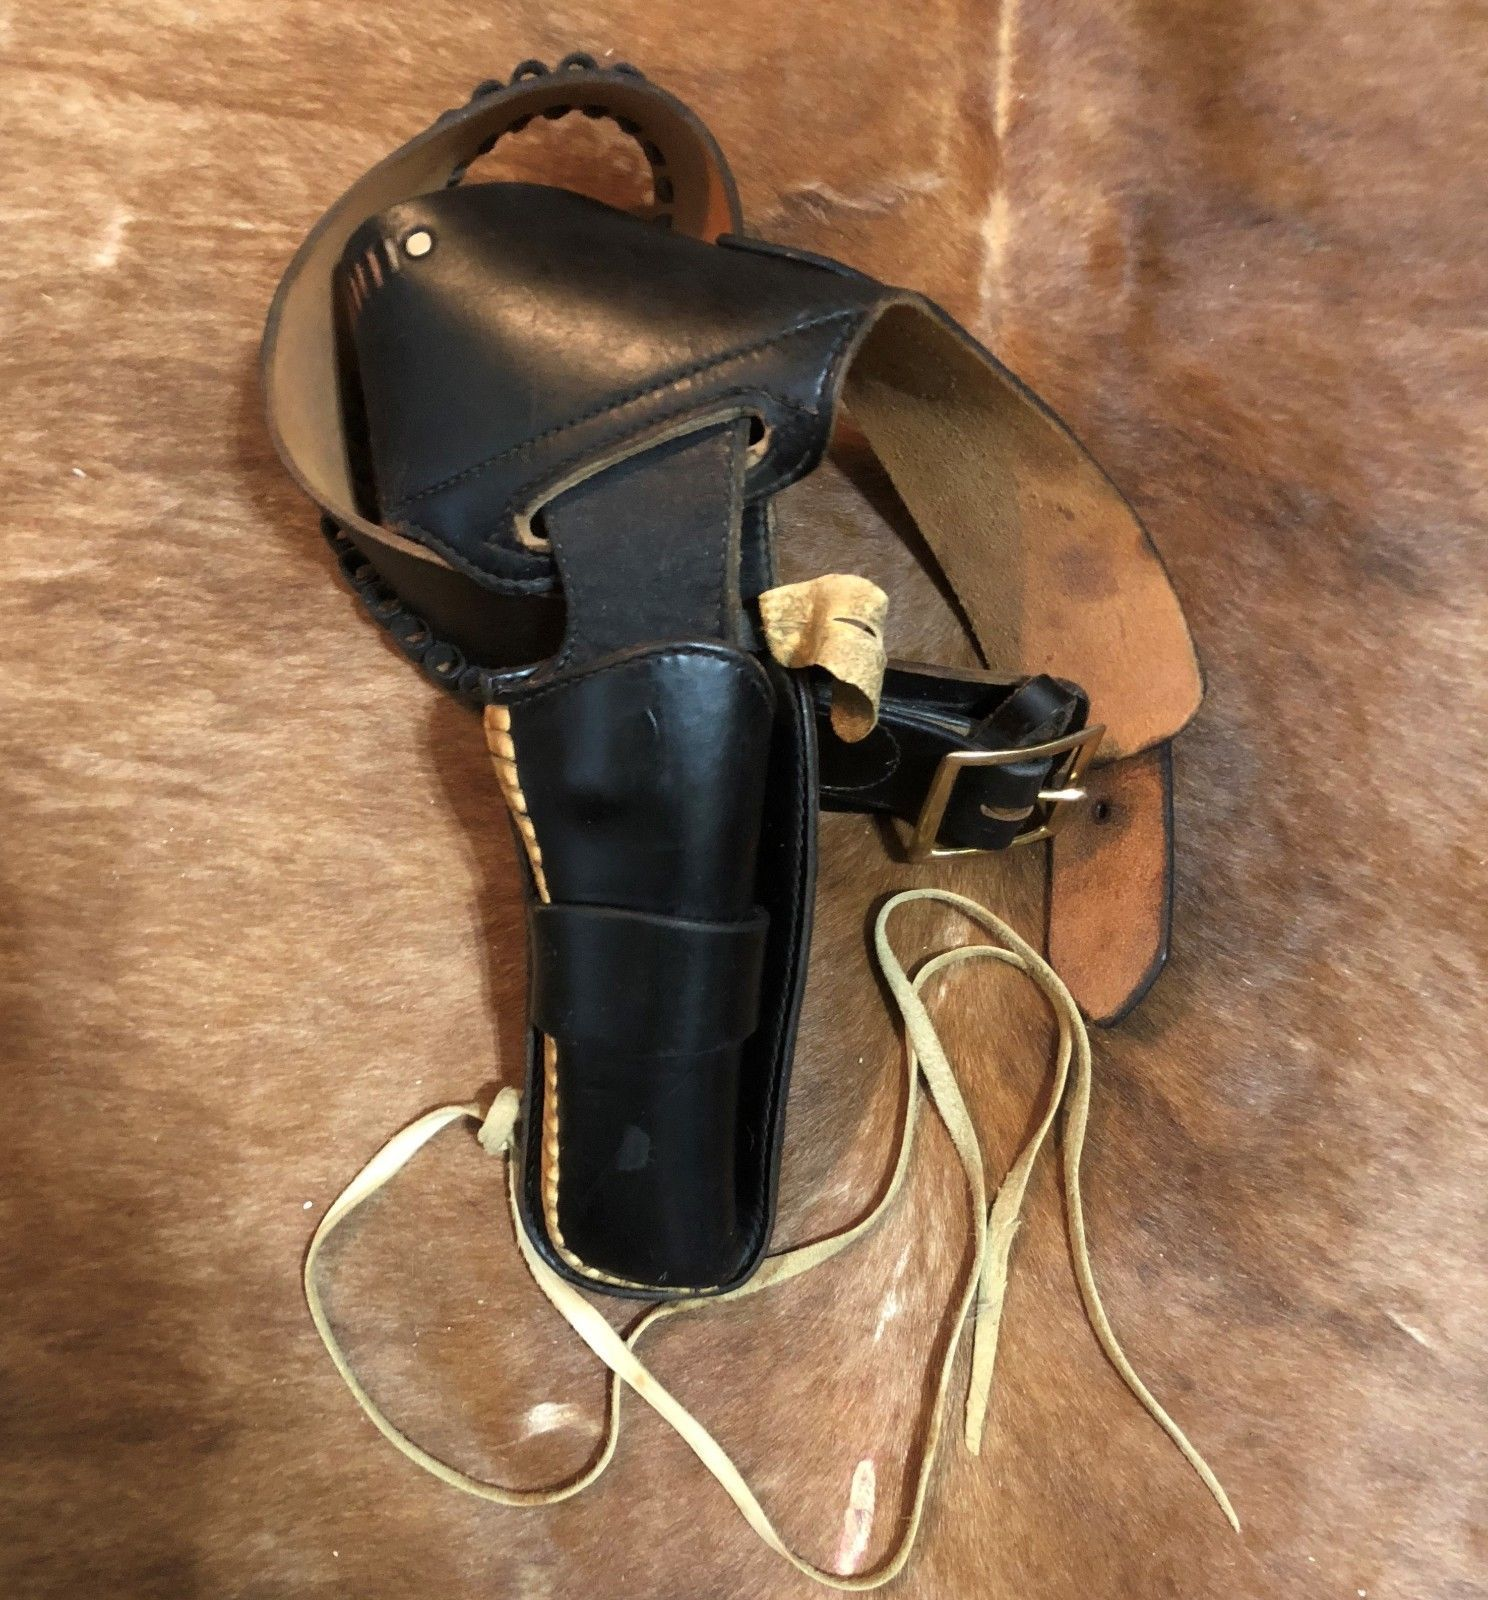 e1f573f30a6c VINTAGE EUBANKS LEATHER GUN HOLSTER RIG MADE IN USA CIRCA 1970 s SIZE 34